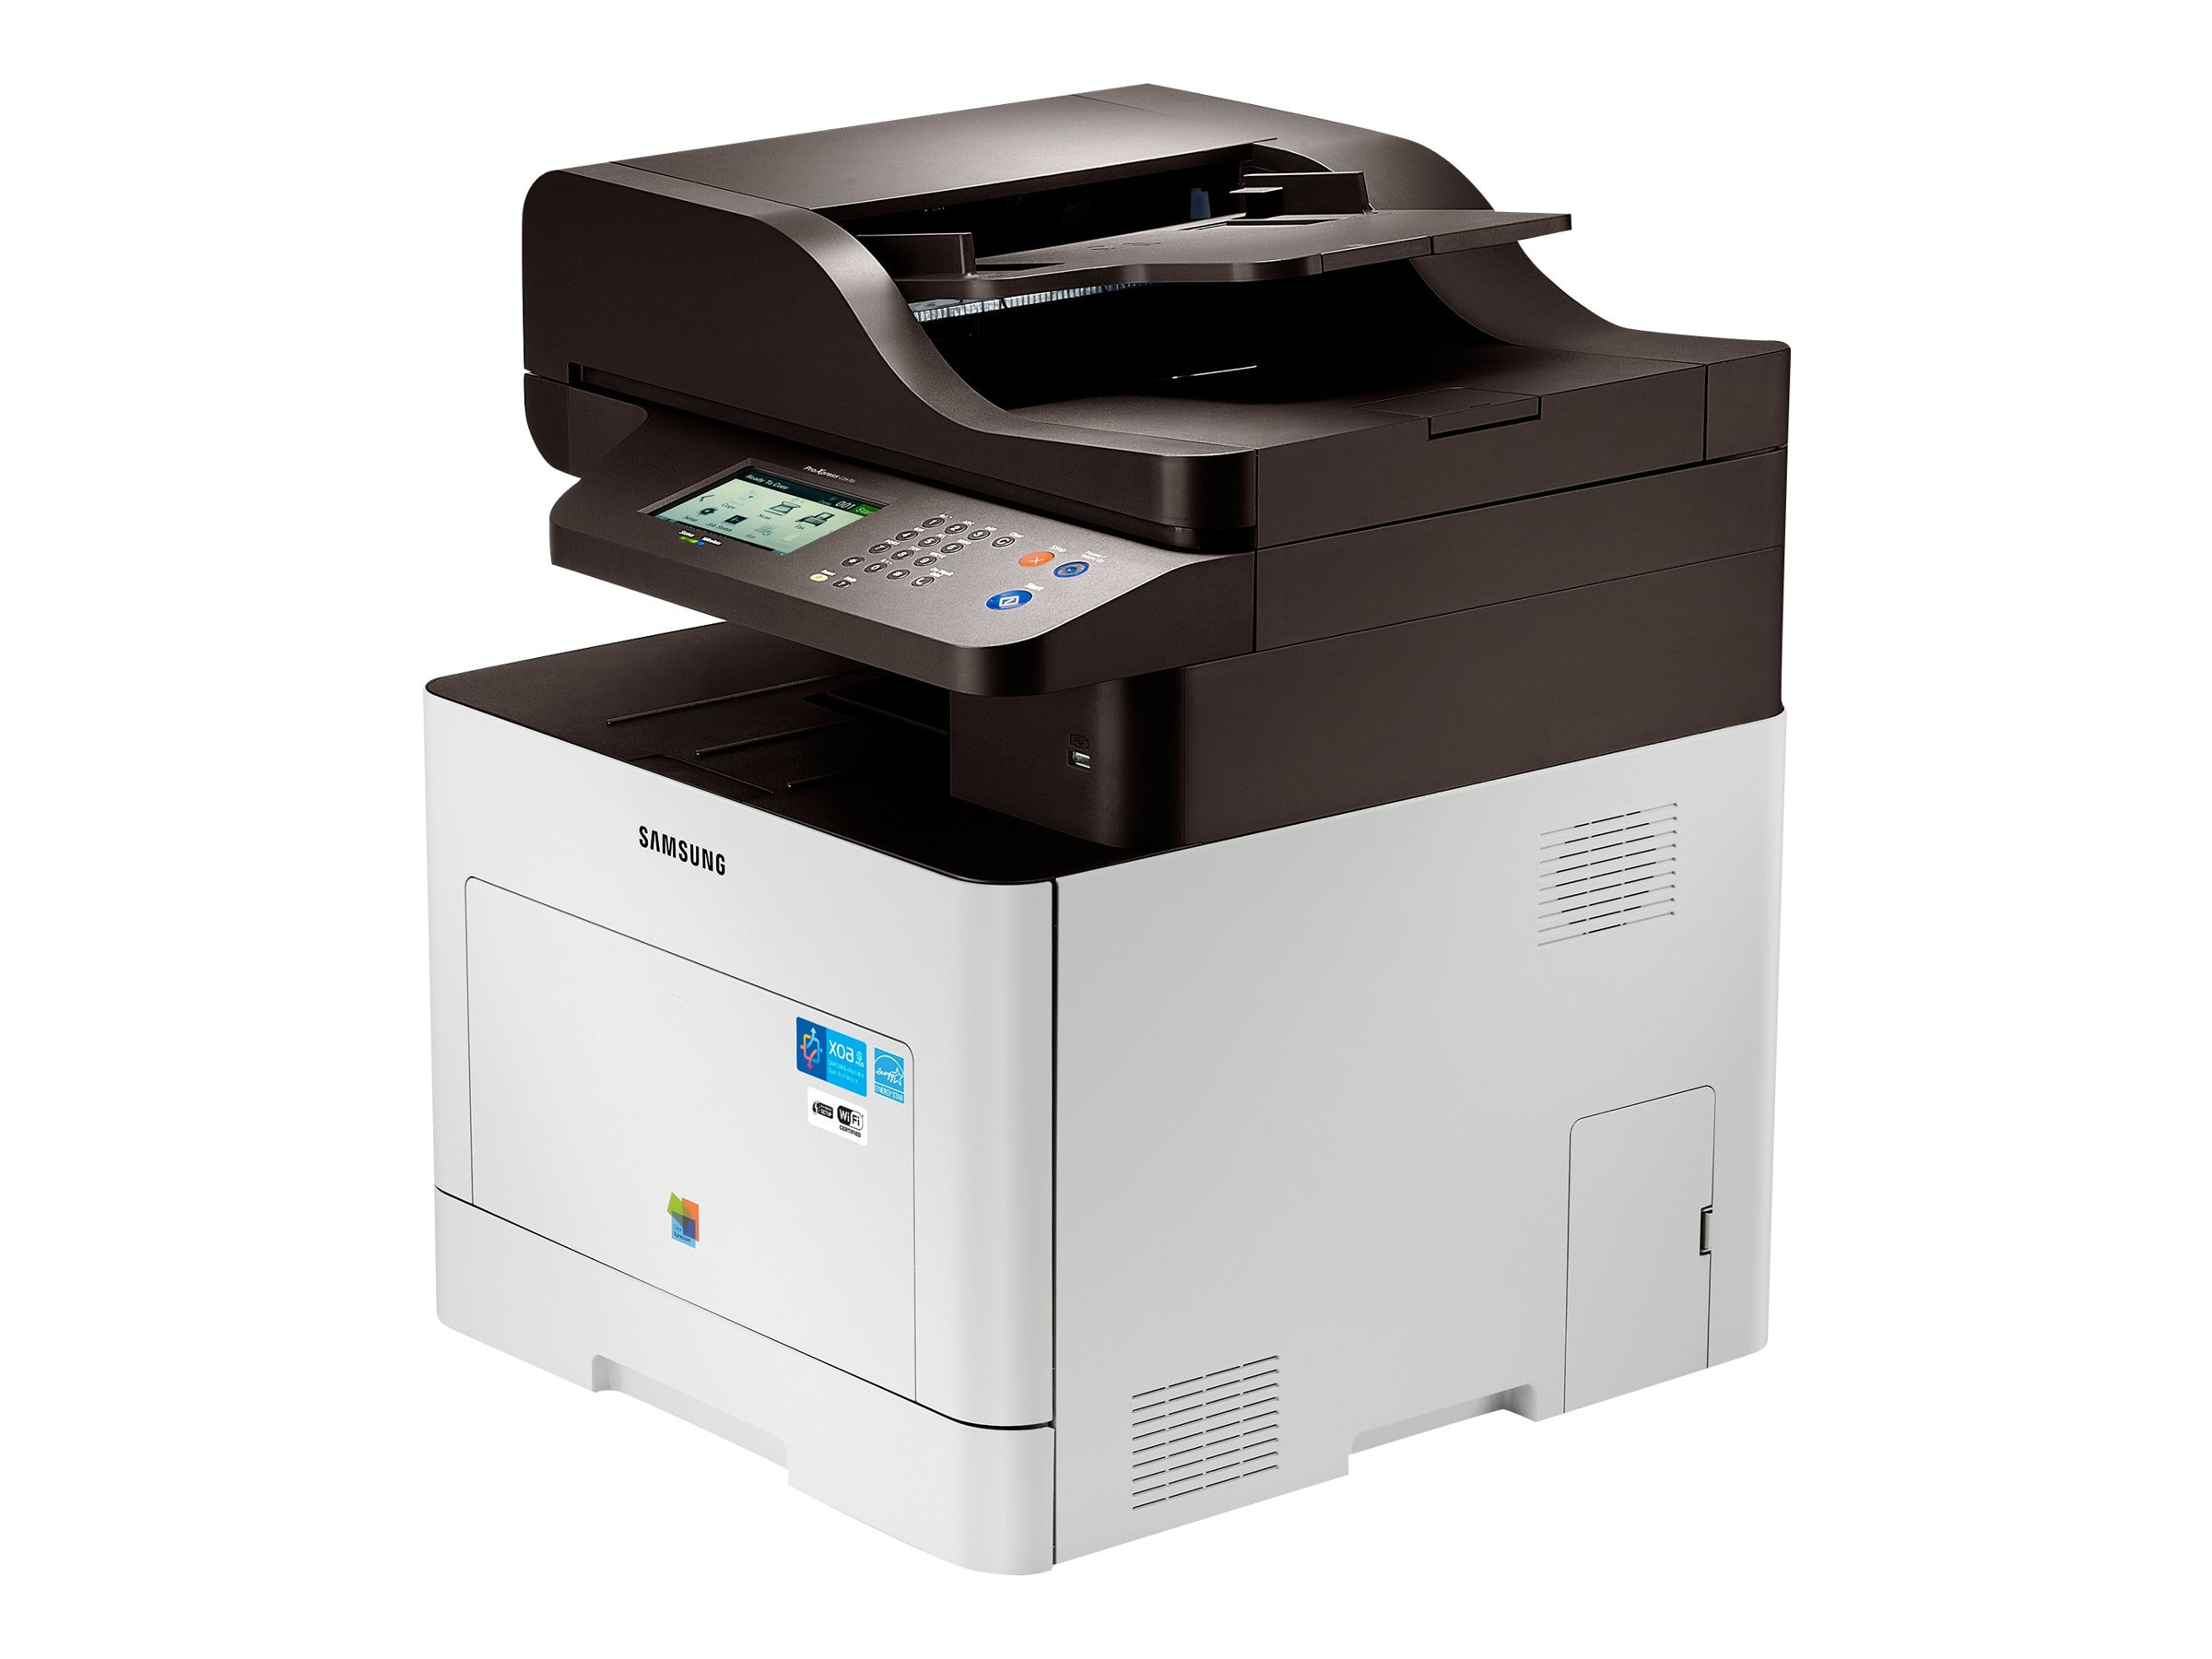 Samsung ProXpress C2670FW A4 Color Multifunction Laser Printer